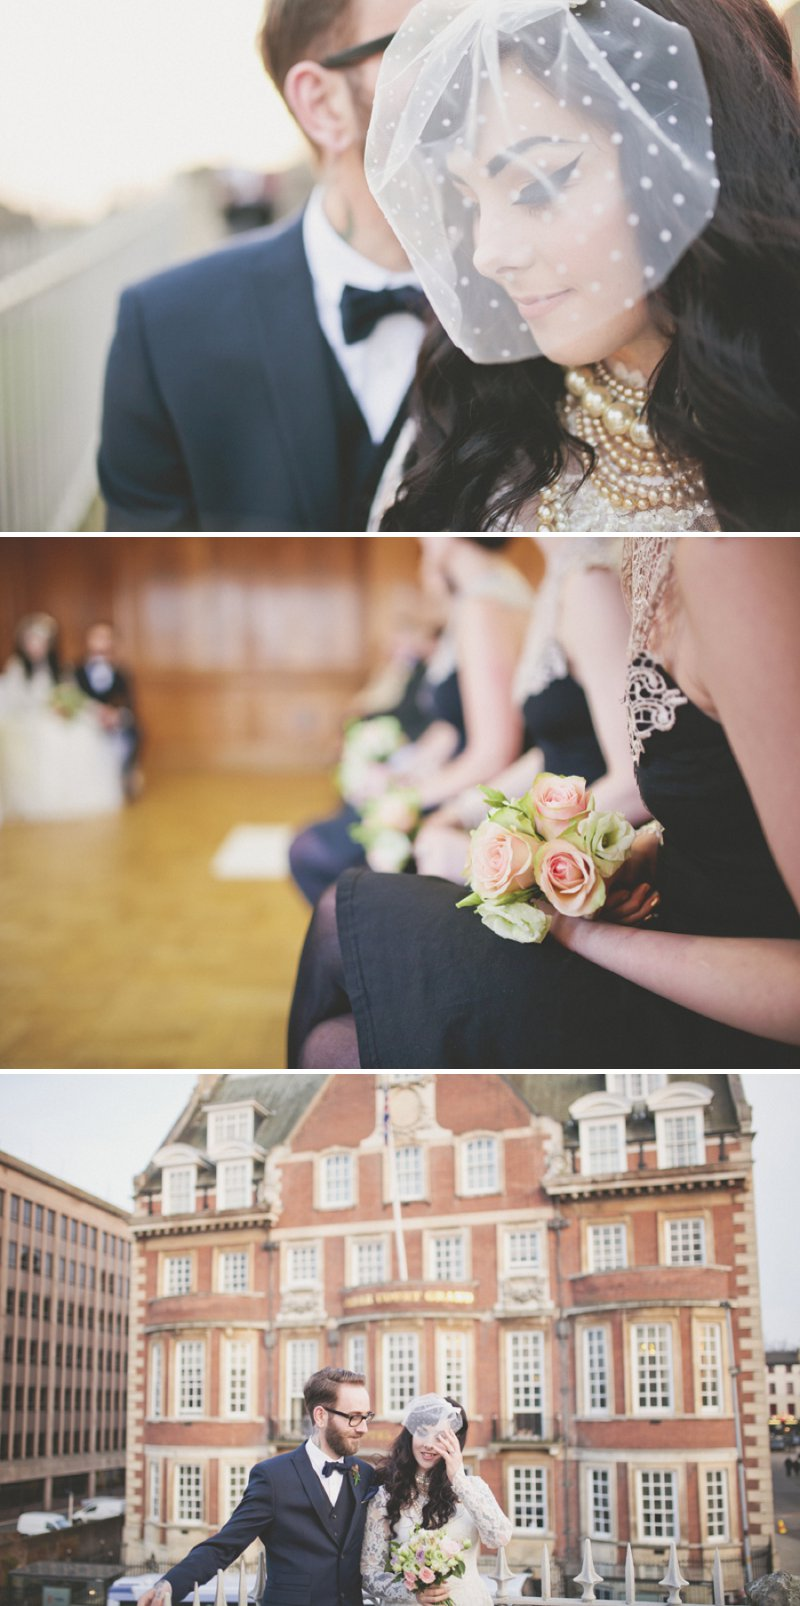 Vintage Emporium Style Wedding At Cedar Court Grand York With Bride In Vintage Gown From Glory Days York And Vintage Pearls And Groom In 20s Style Five Piece Suit With Bridesmaids In Black And White Lace Dresses From New Look 1 Dedicated To You.